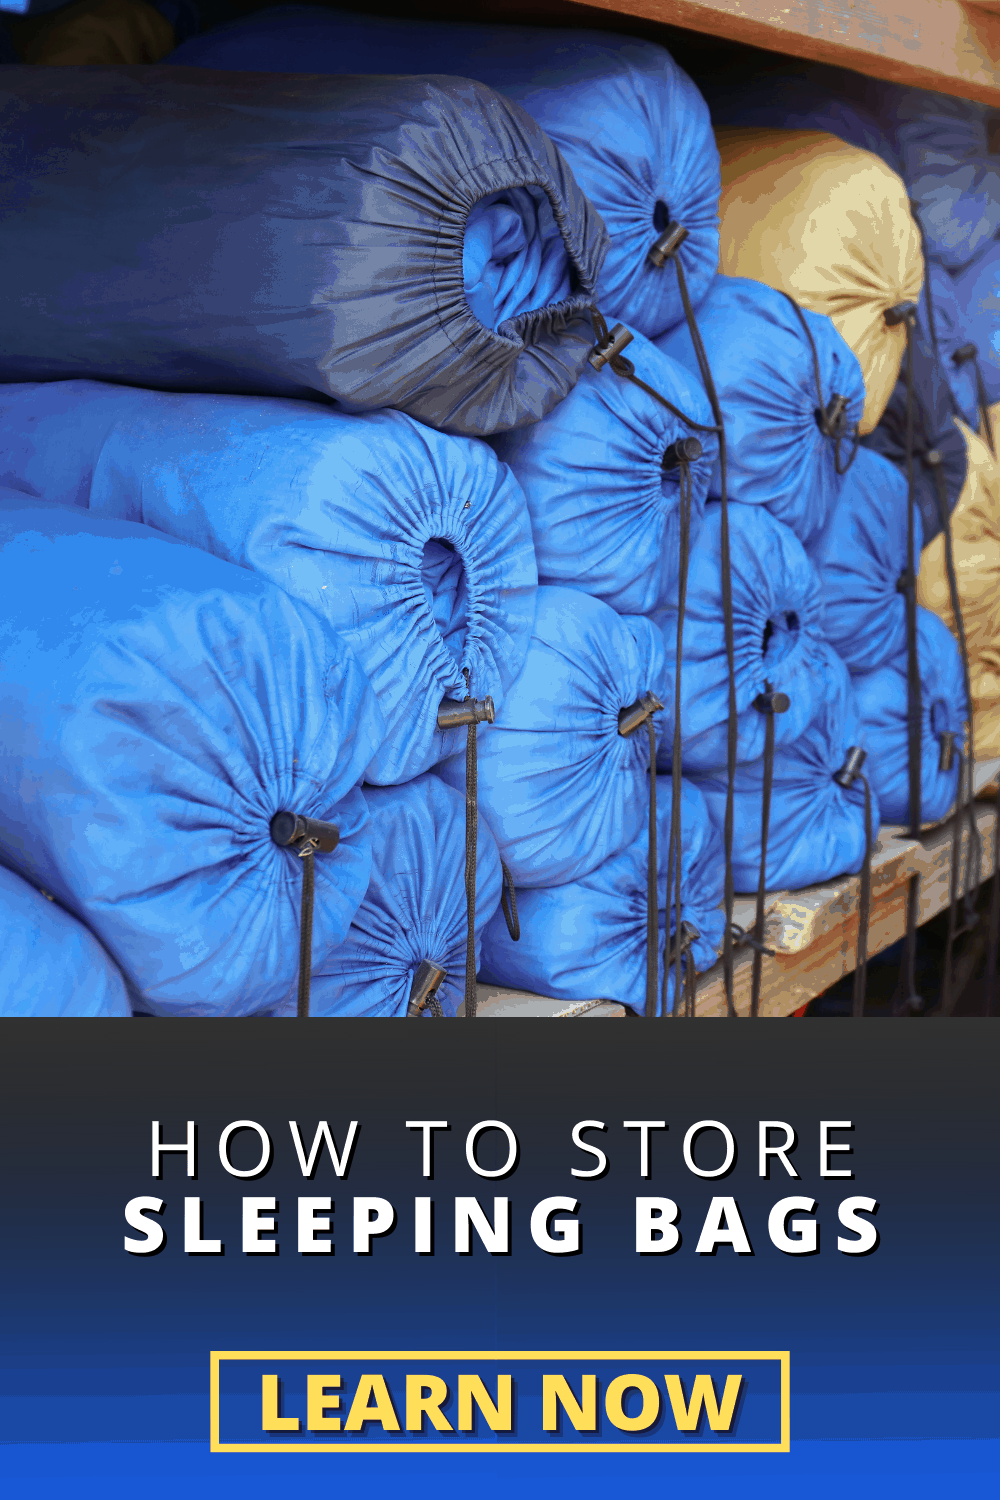 How to Store Sleeping Bags